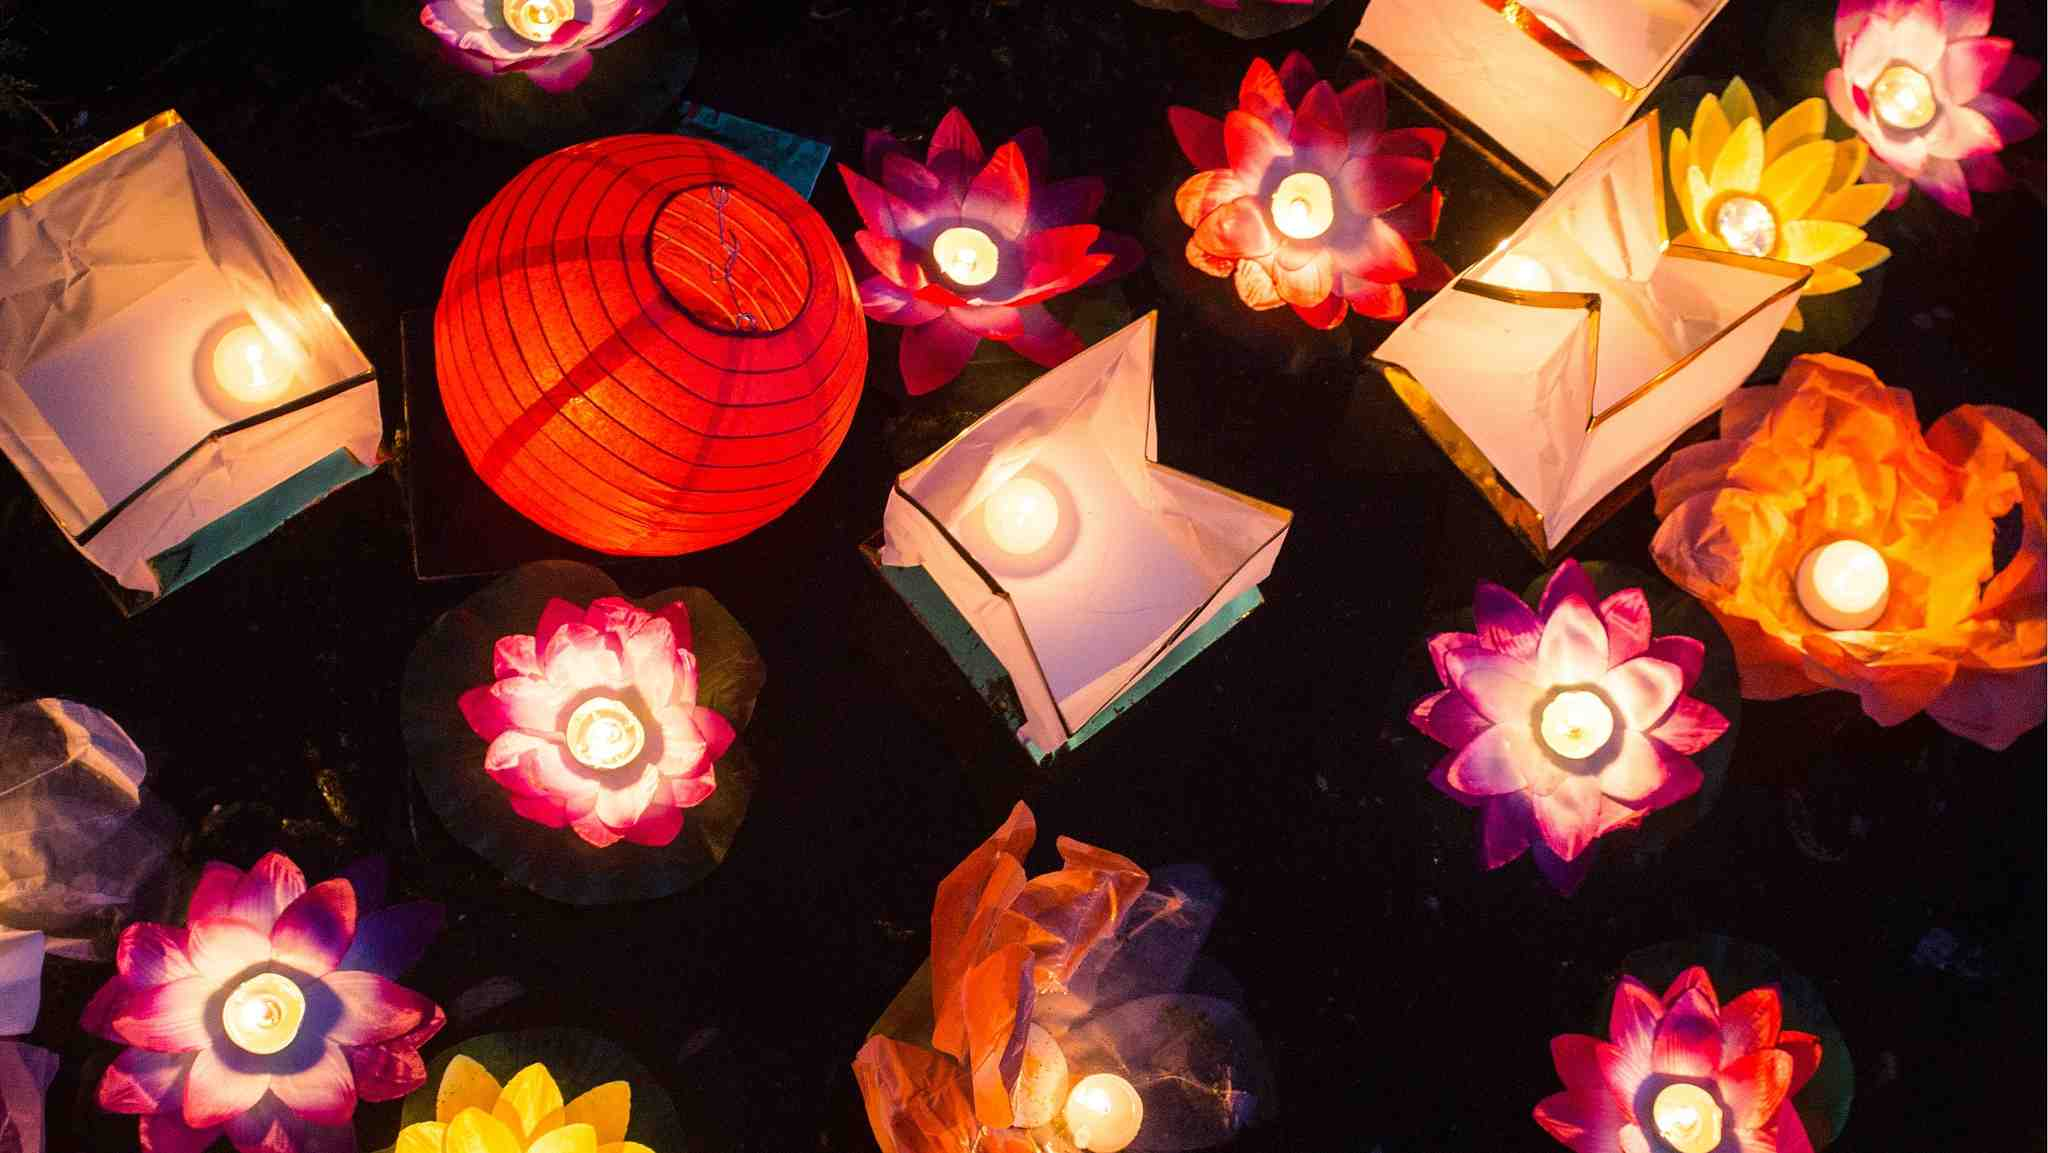 Water lantern festival is held in Russia